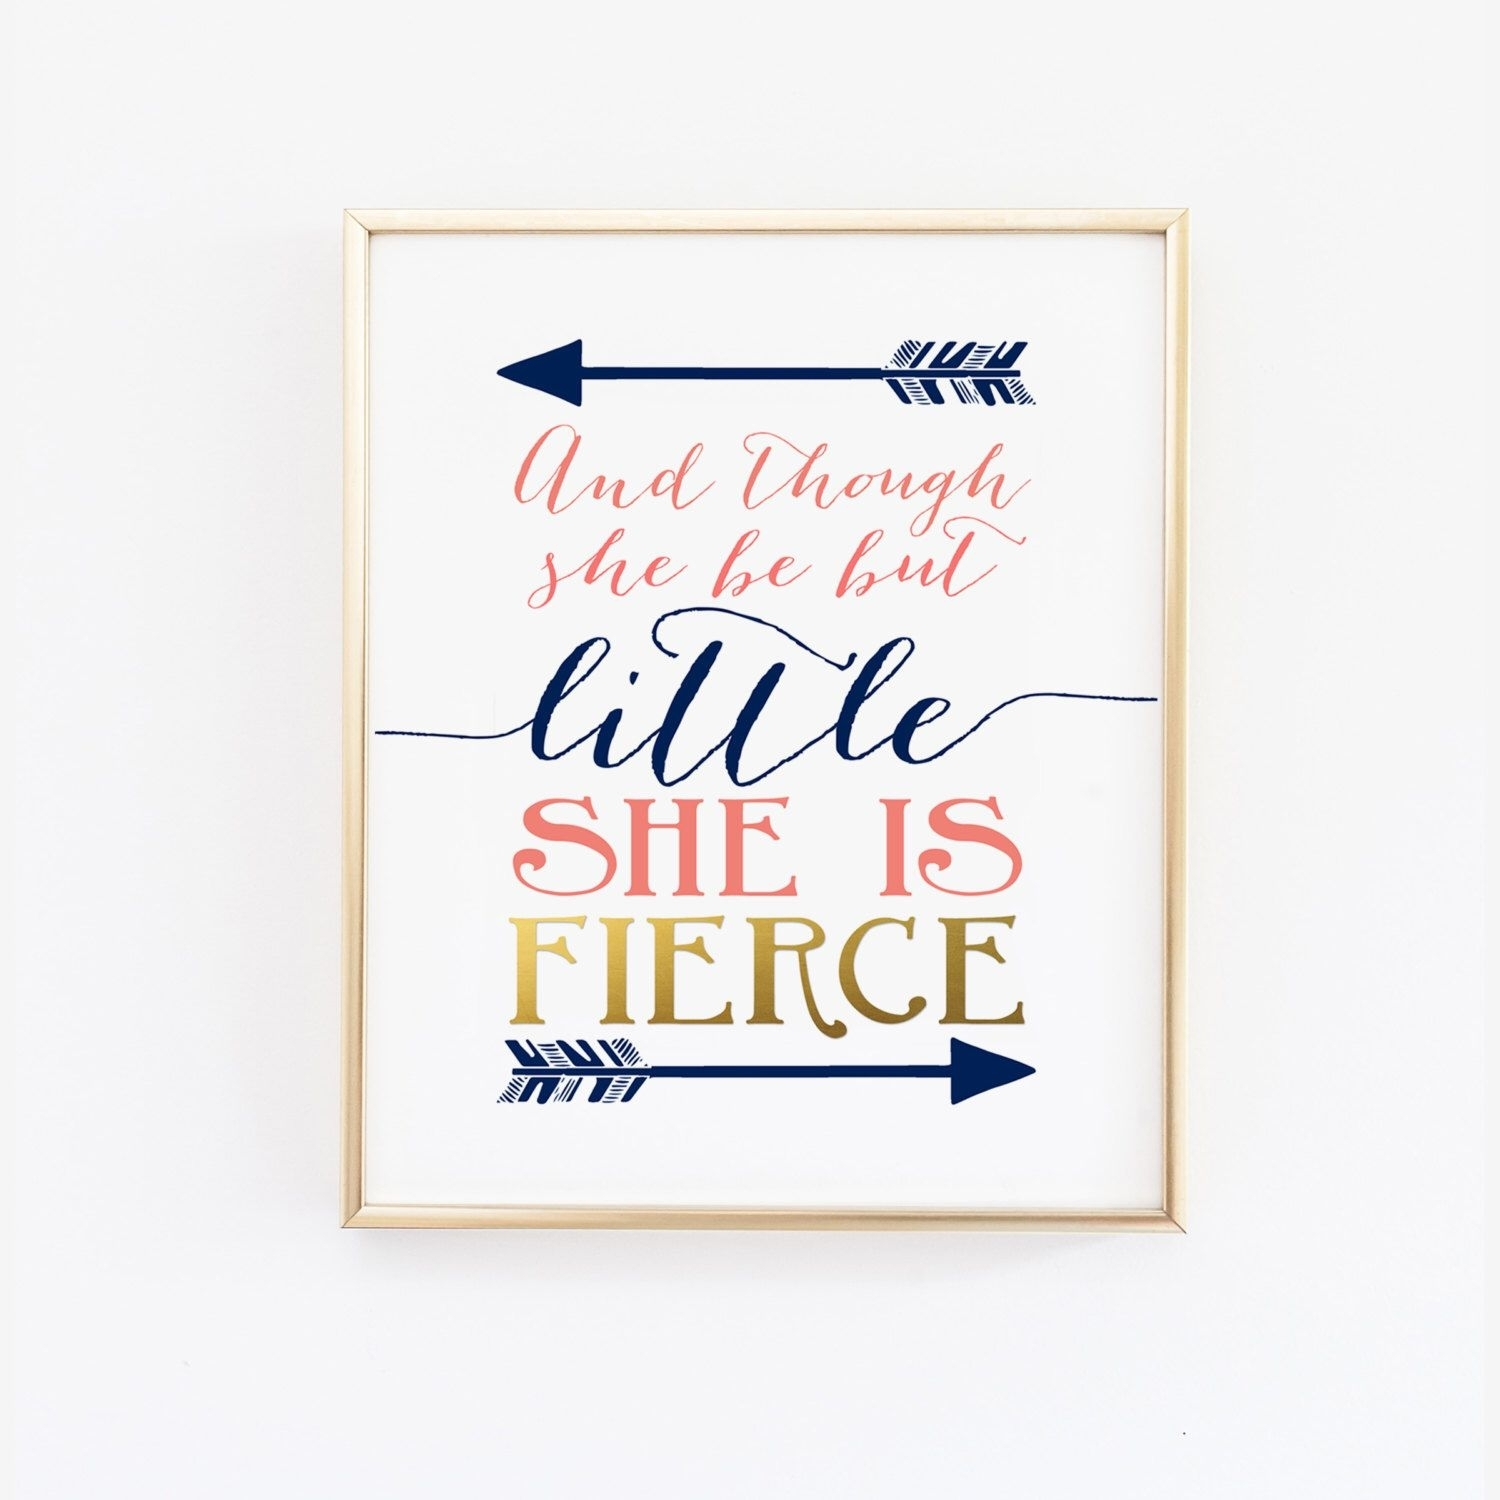 Printable Wall Art – And Though She Be But Little She Is Fierce Intended For Best And Newest Though She Be But Little She Is Fierce Wall Art (View 13 of 20)